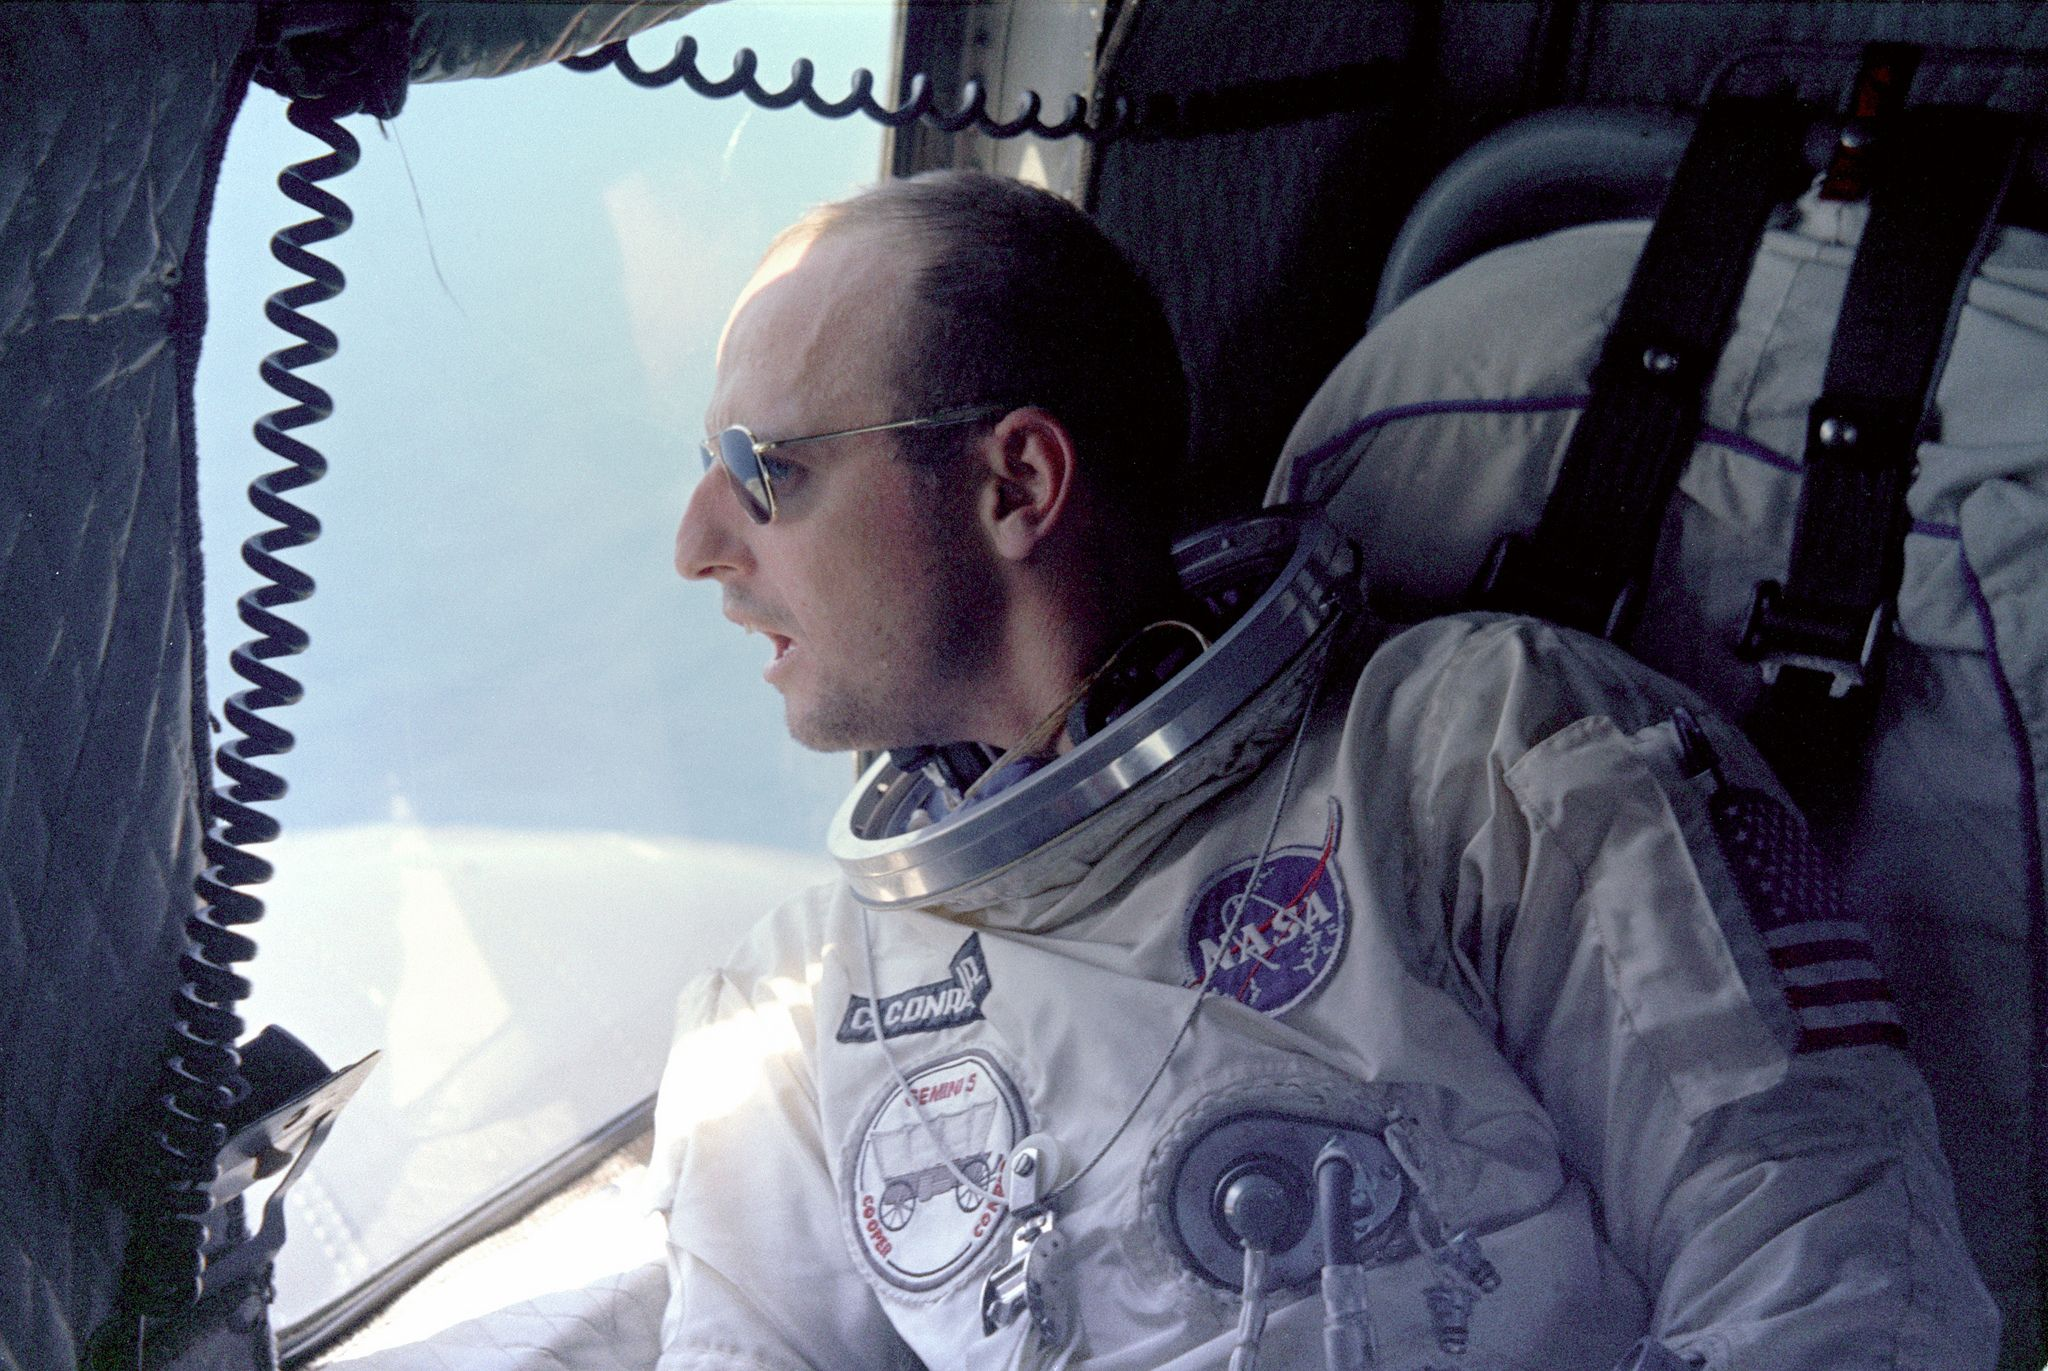 """https://flic.kr/p/fq1btd 